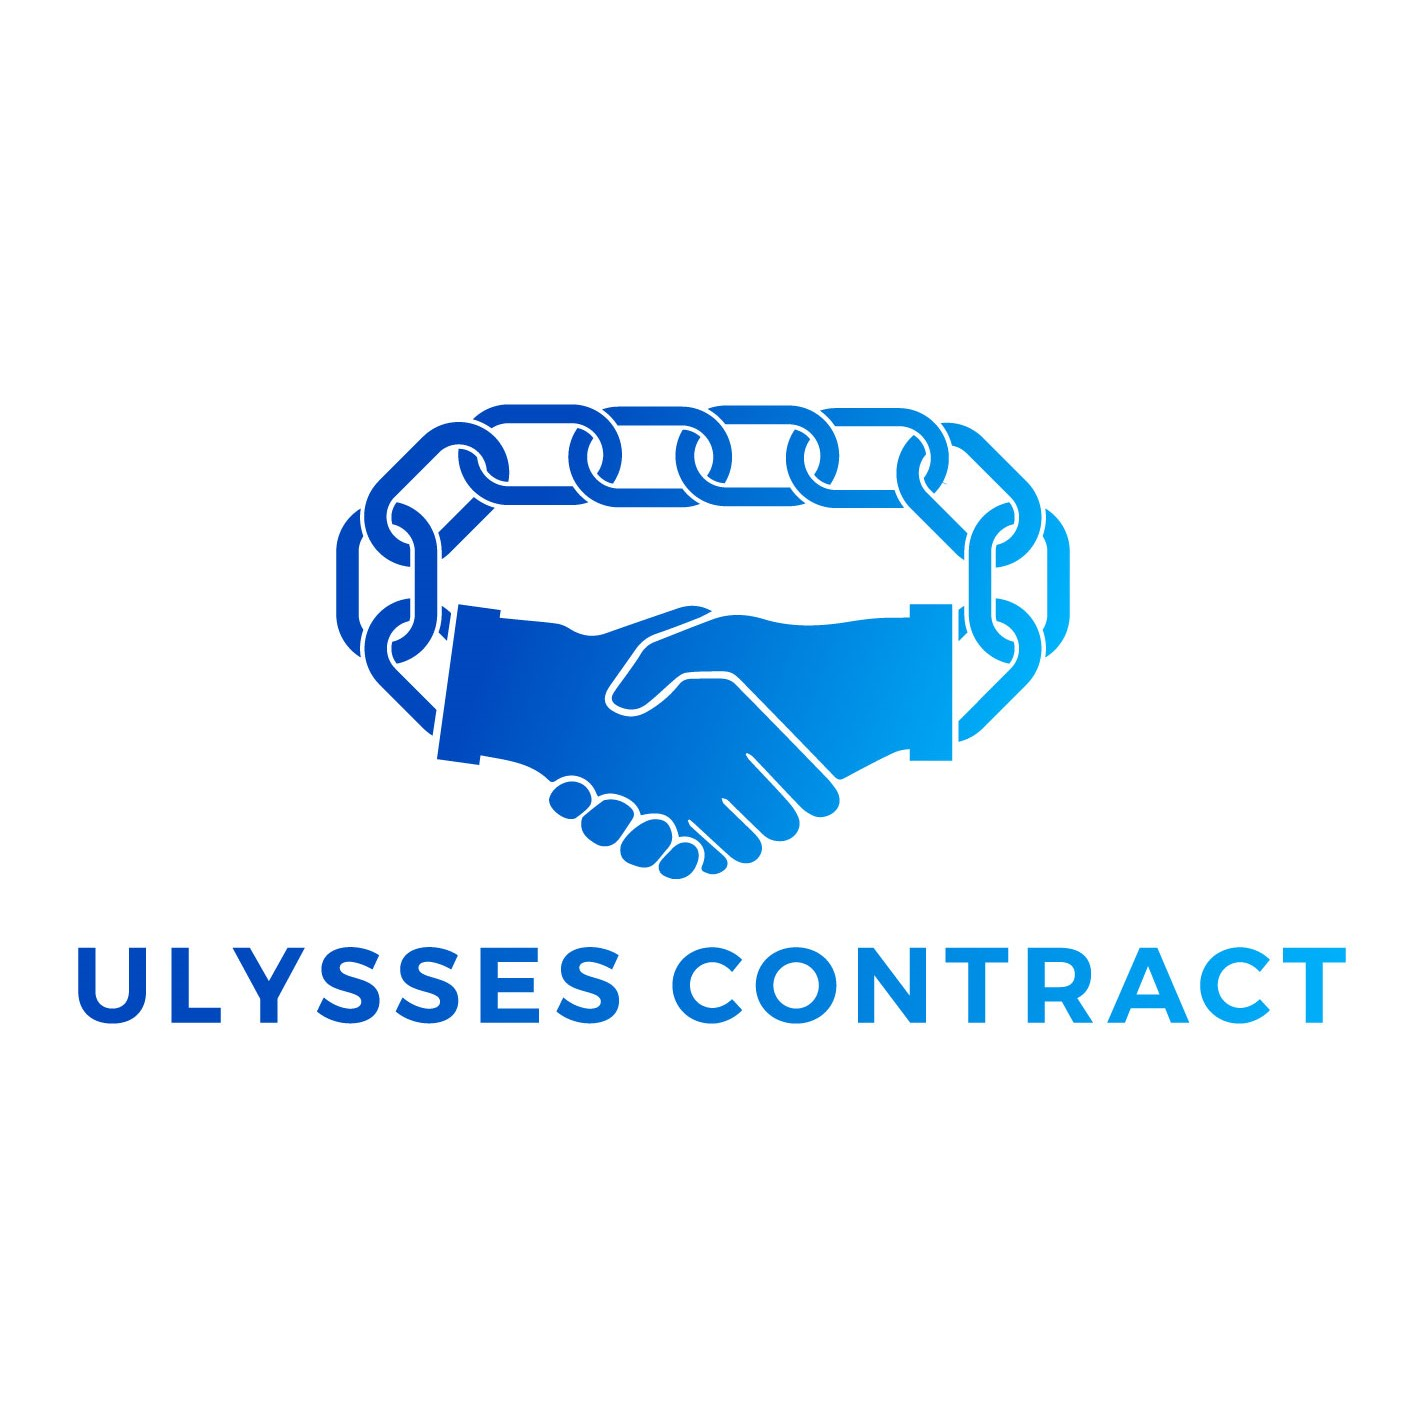 Ulysses Contract logo